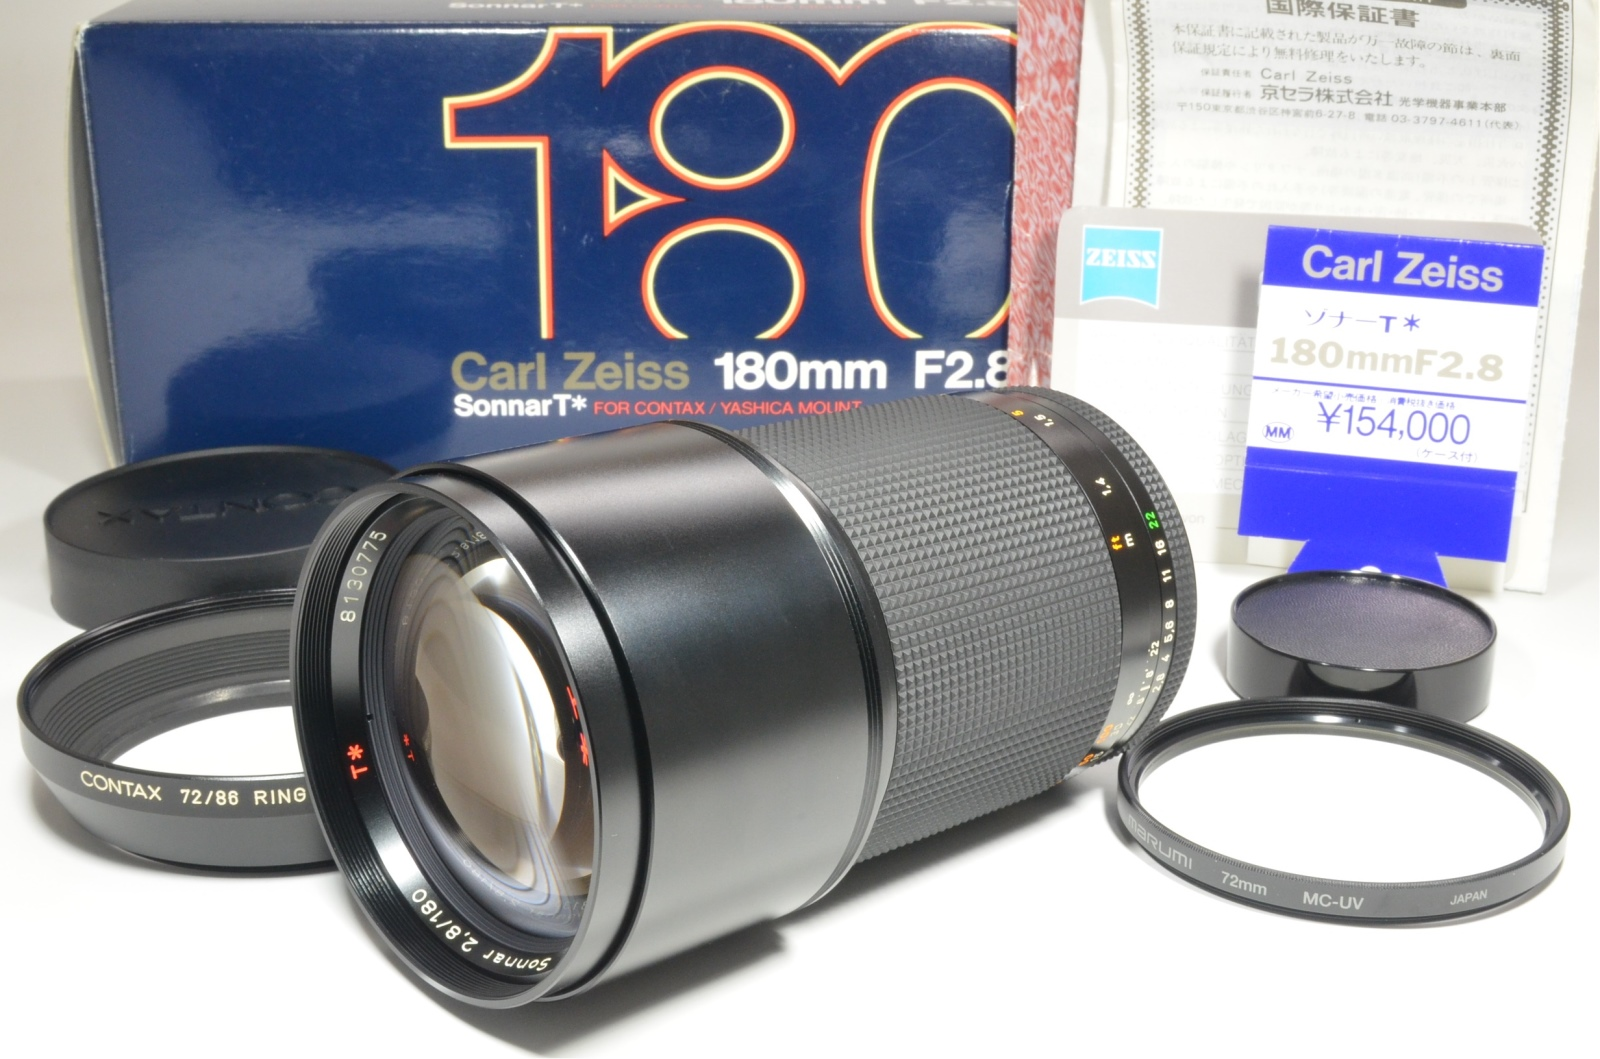 contax carl zeiss sonnar t* 180mm f2.8 mmj japan 'unused'